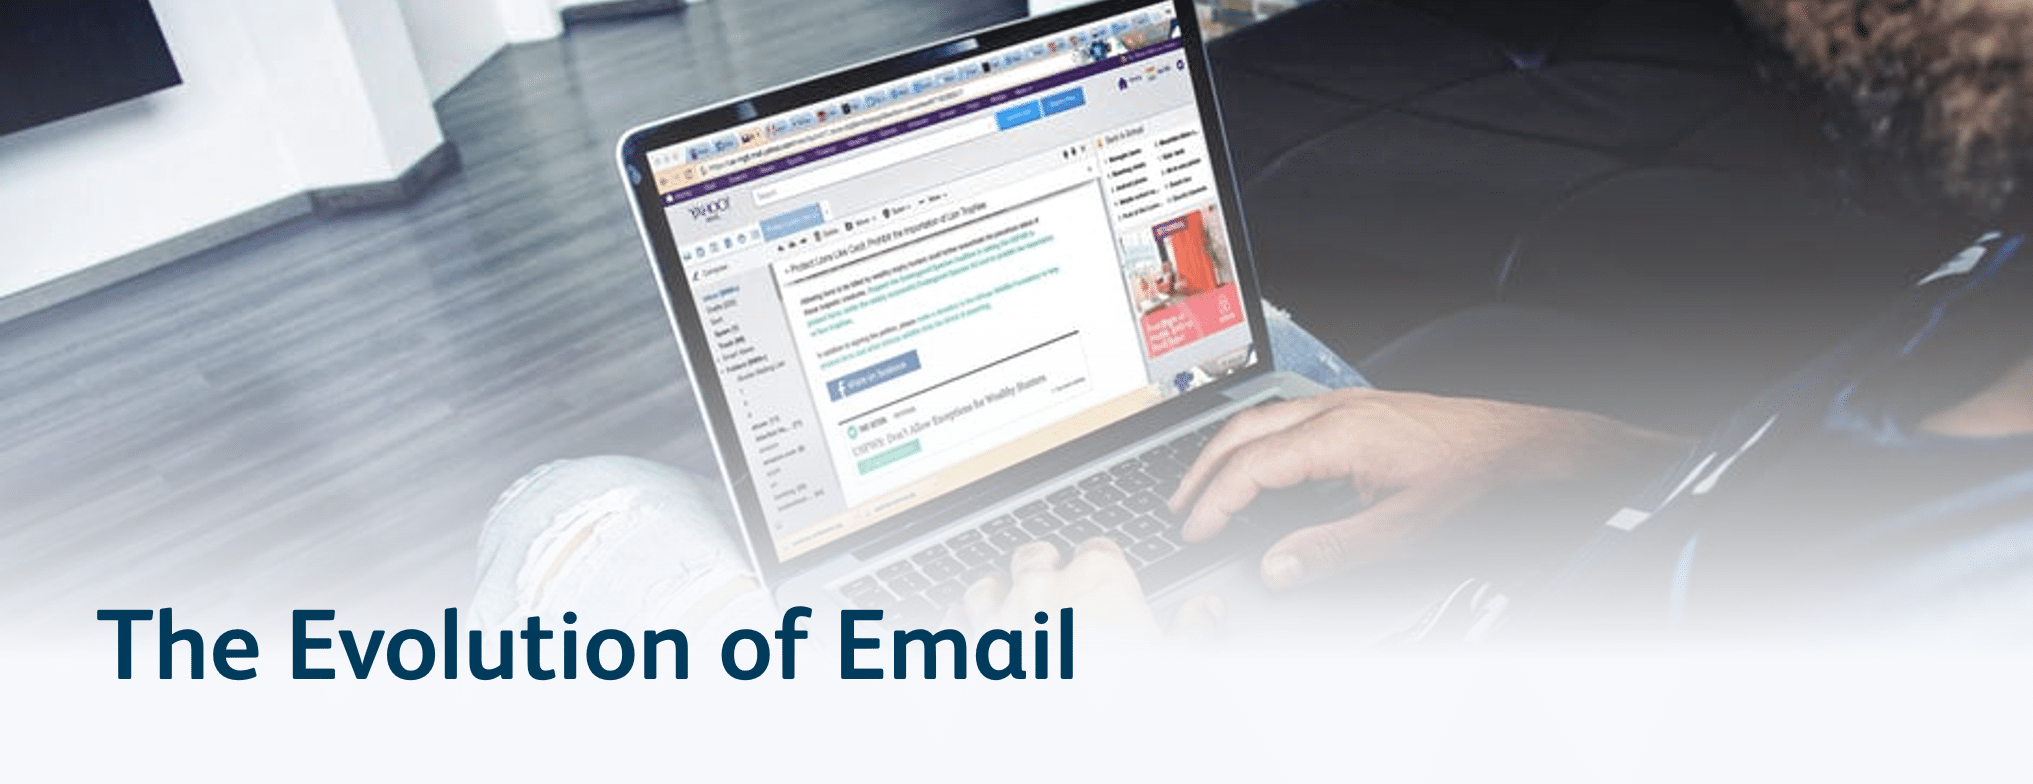 The Evolution of Email